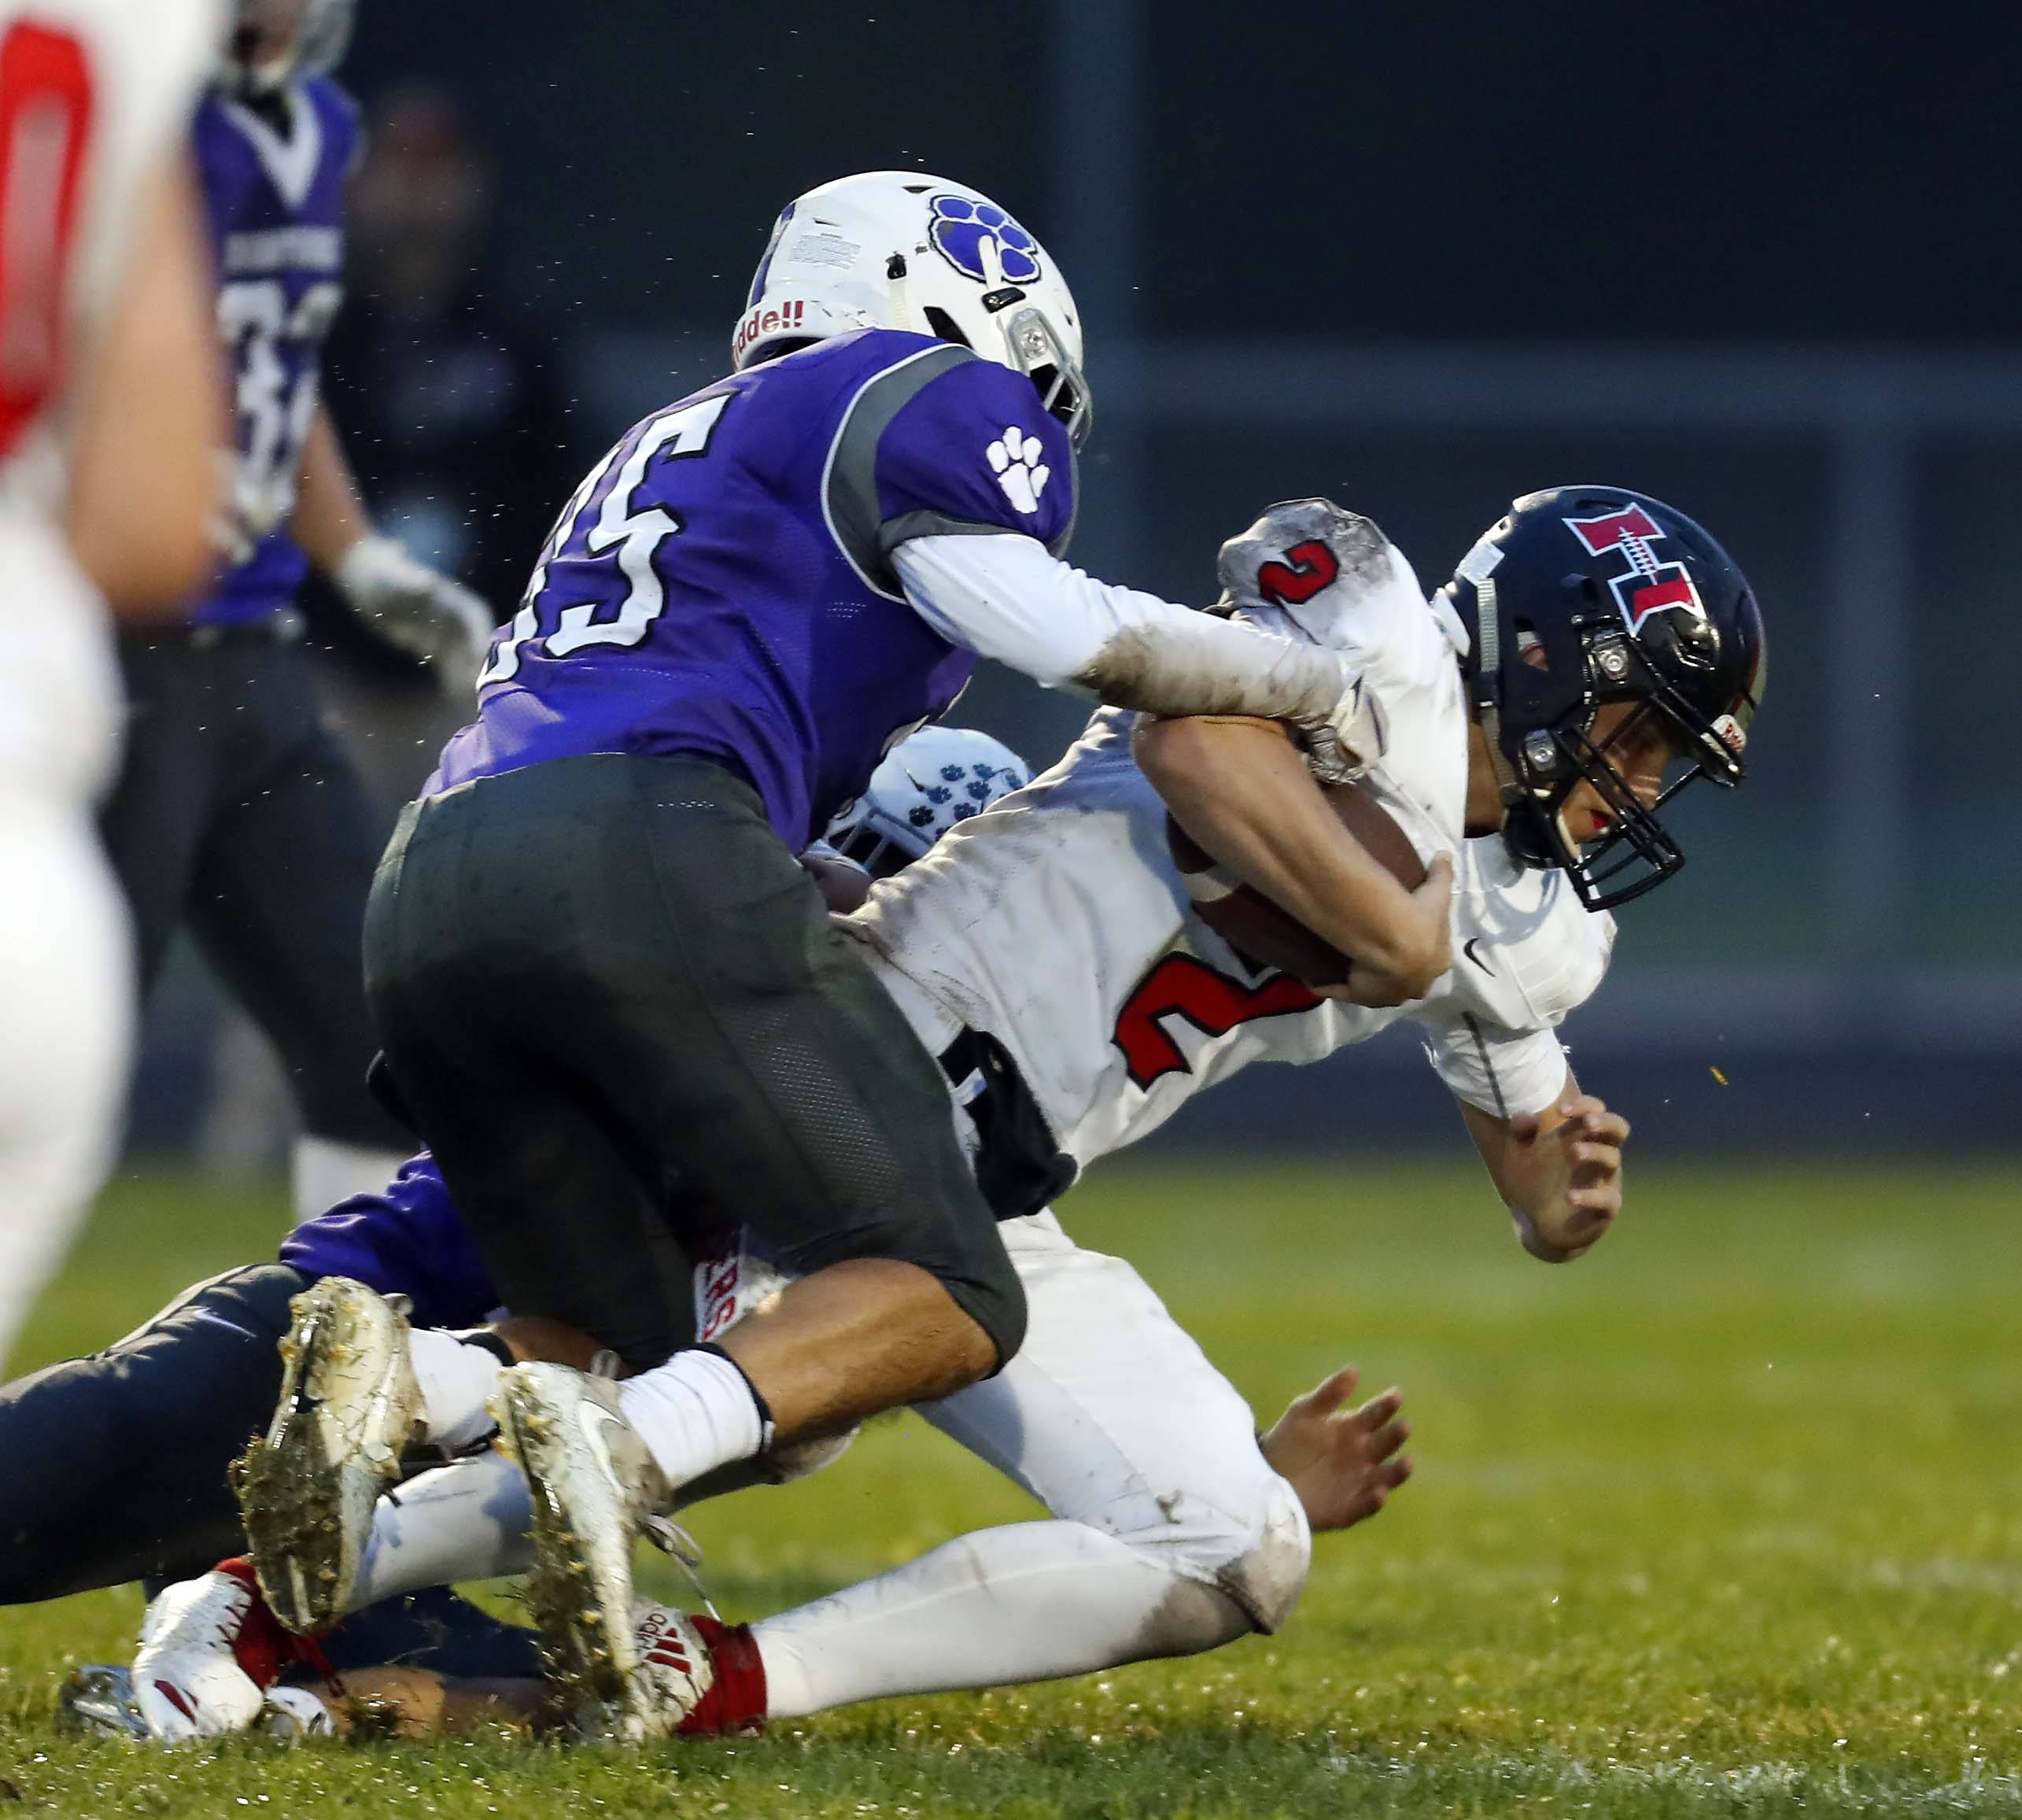 Hampshire's William Negron (35) helps bring down Huntley's Christopher Raffin (2) Friday during football in Hampshire.